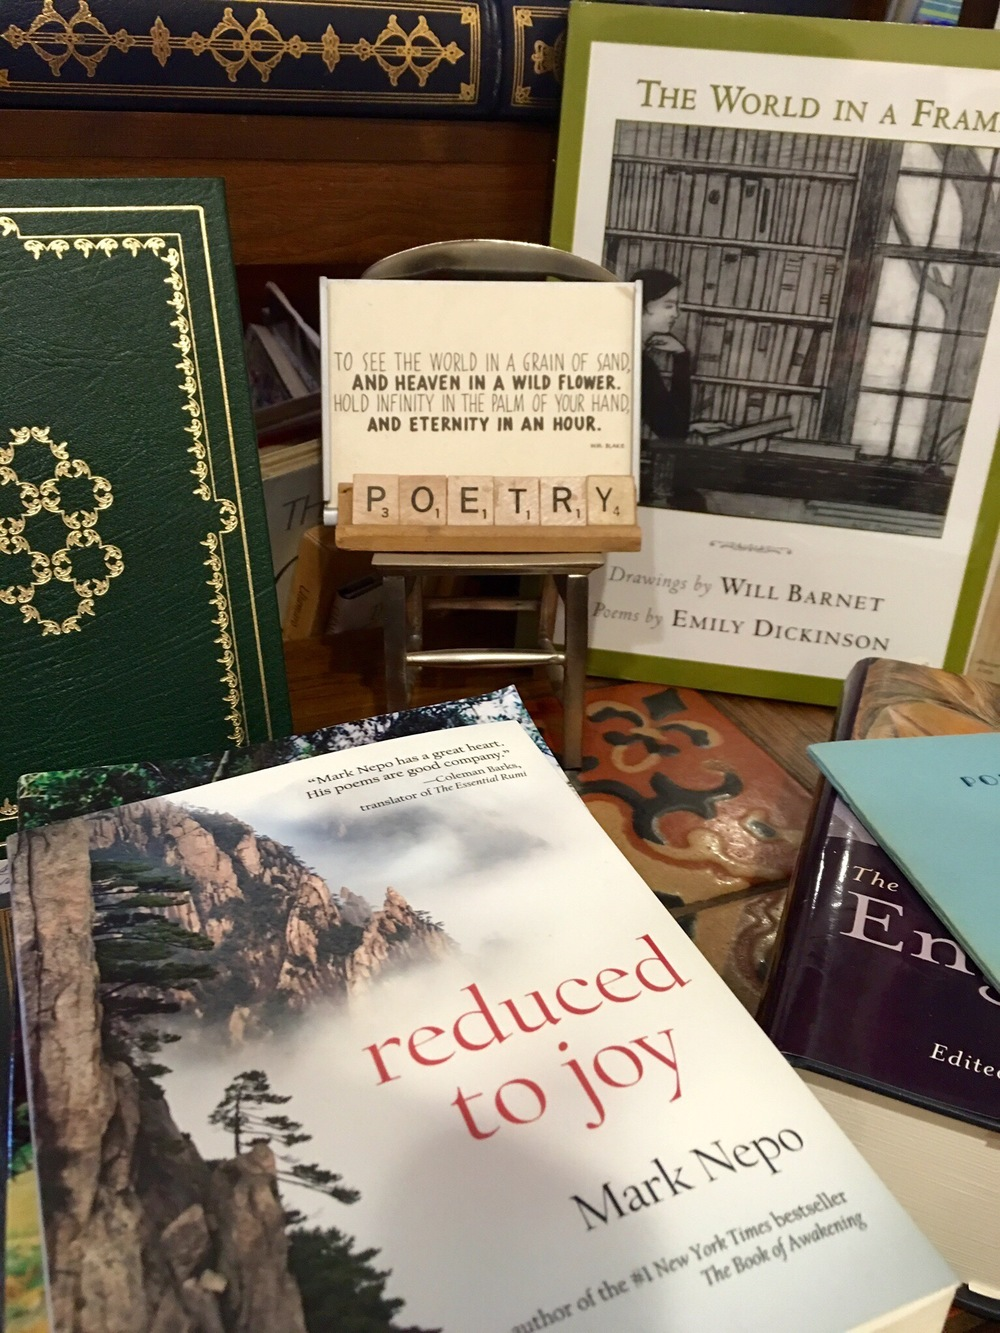 Poetry in a book store, Ojai California - 3 Days*